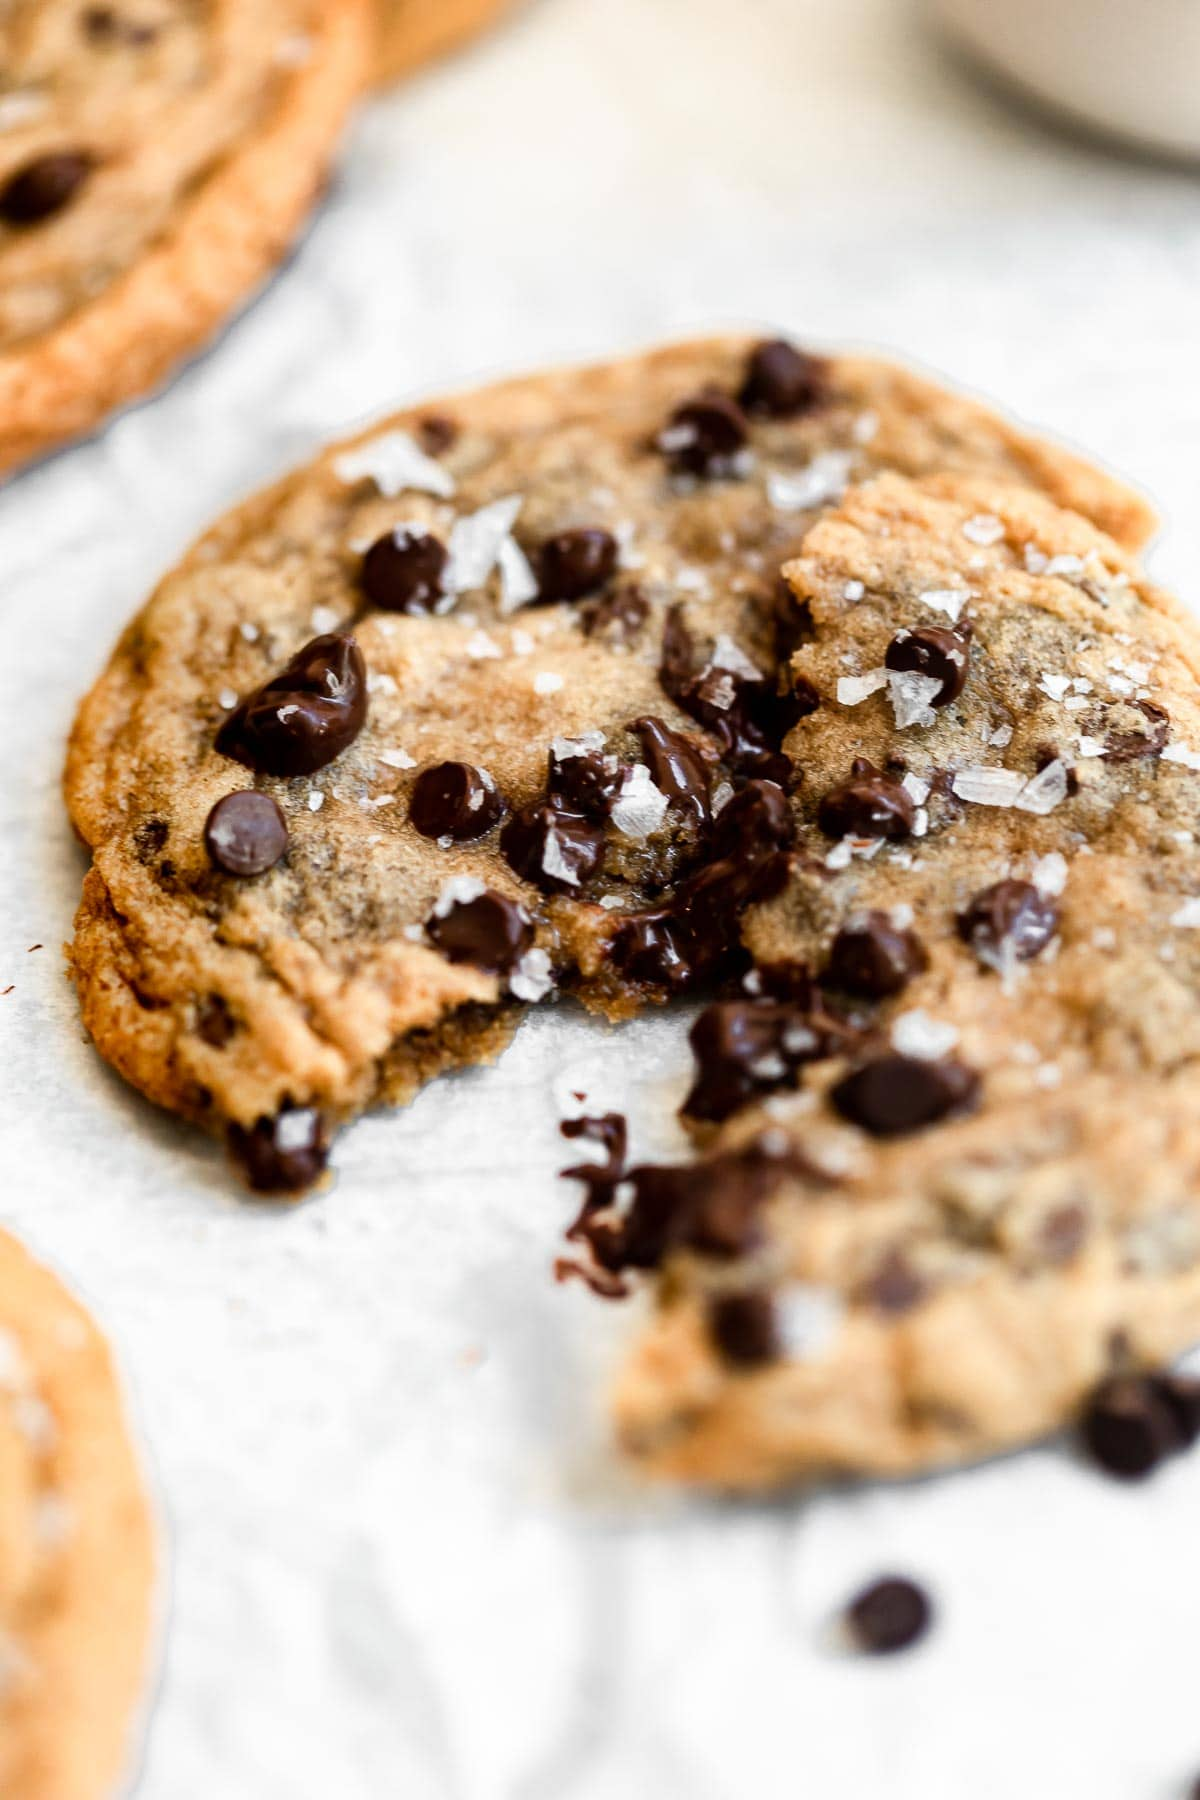 One cookie ripped in half with melted chocolate chips.